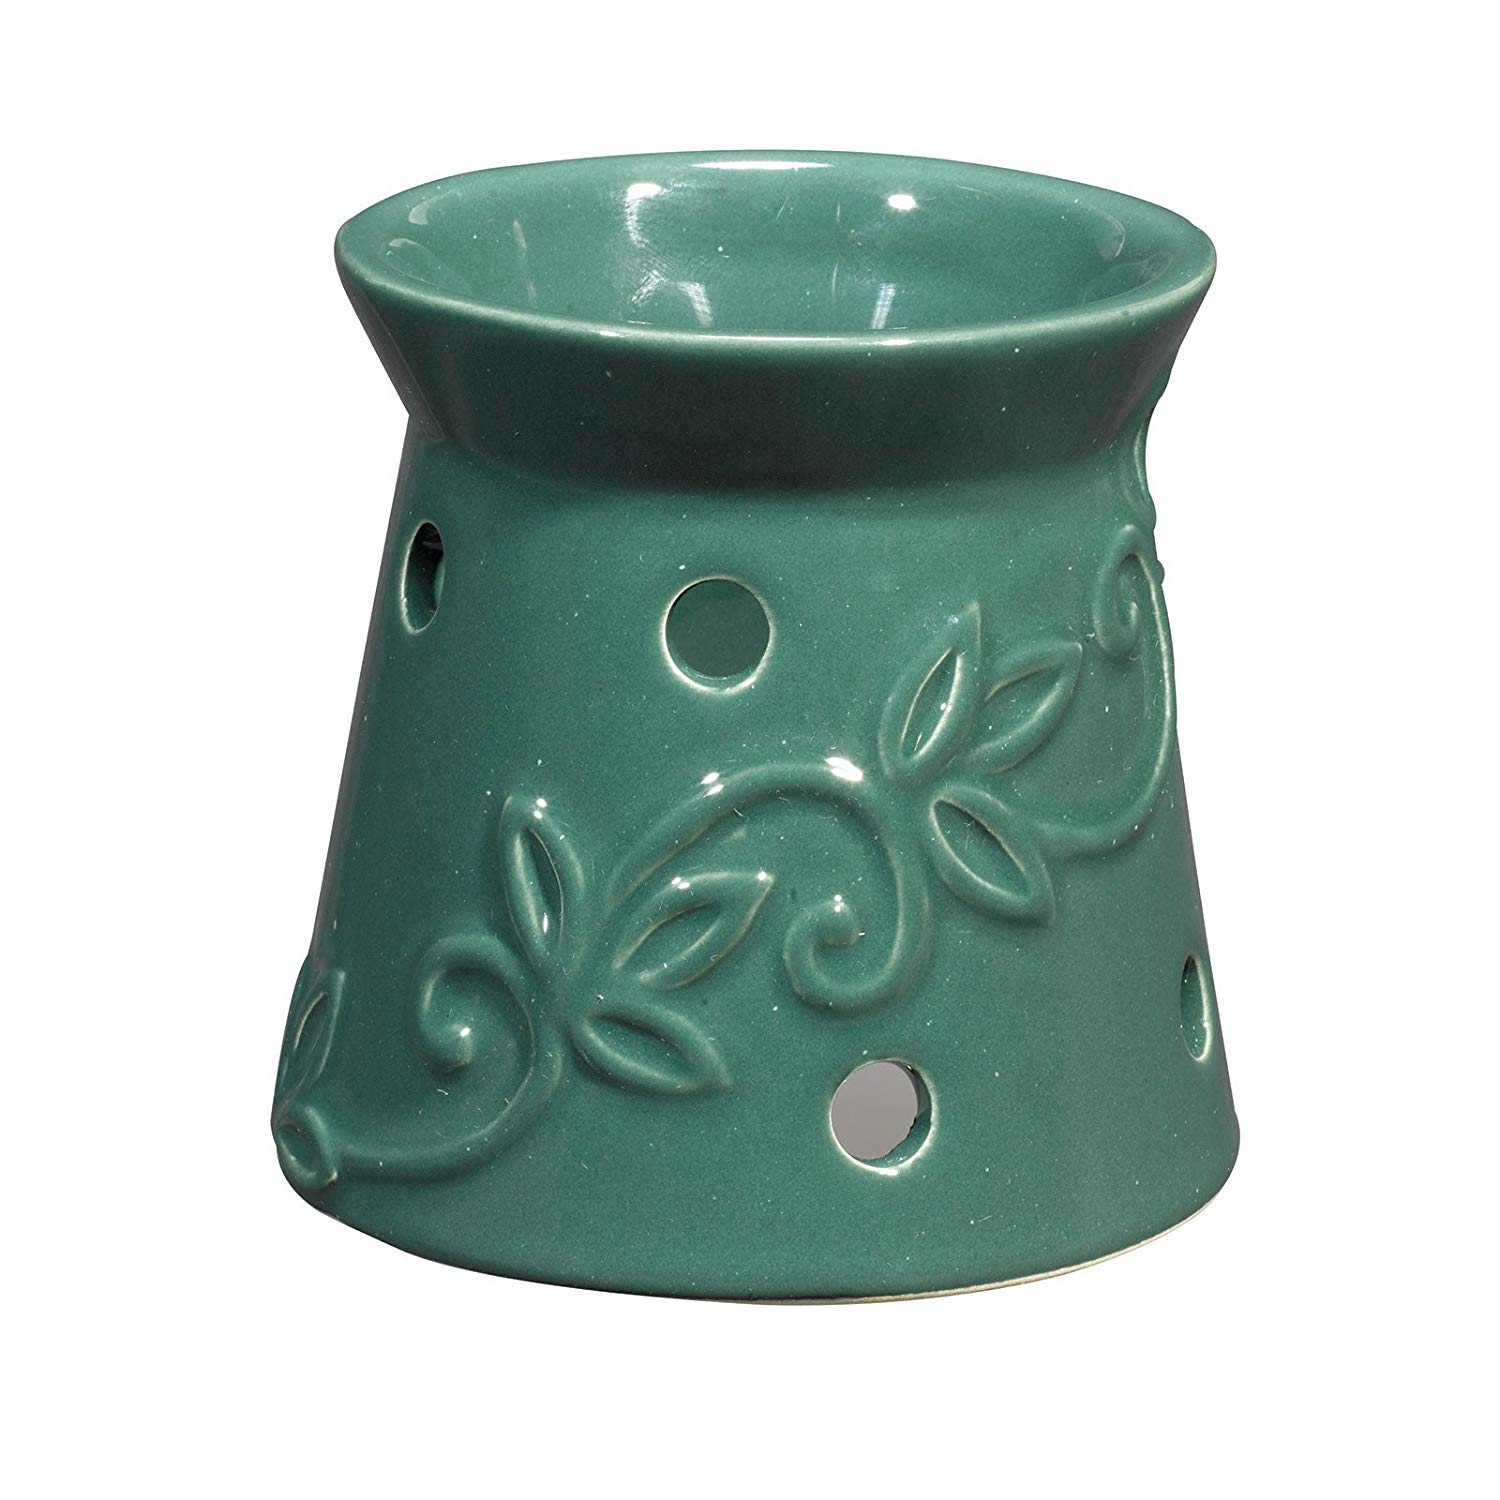 Westinghouse Night Light Fragrance Warmer: Green Design (1 Piece Promotional Vanilla Scented Disc included)